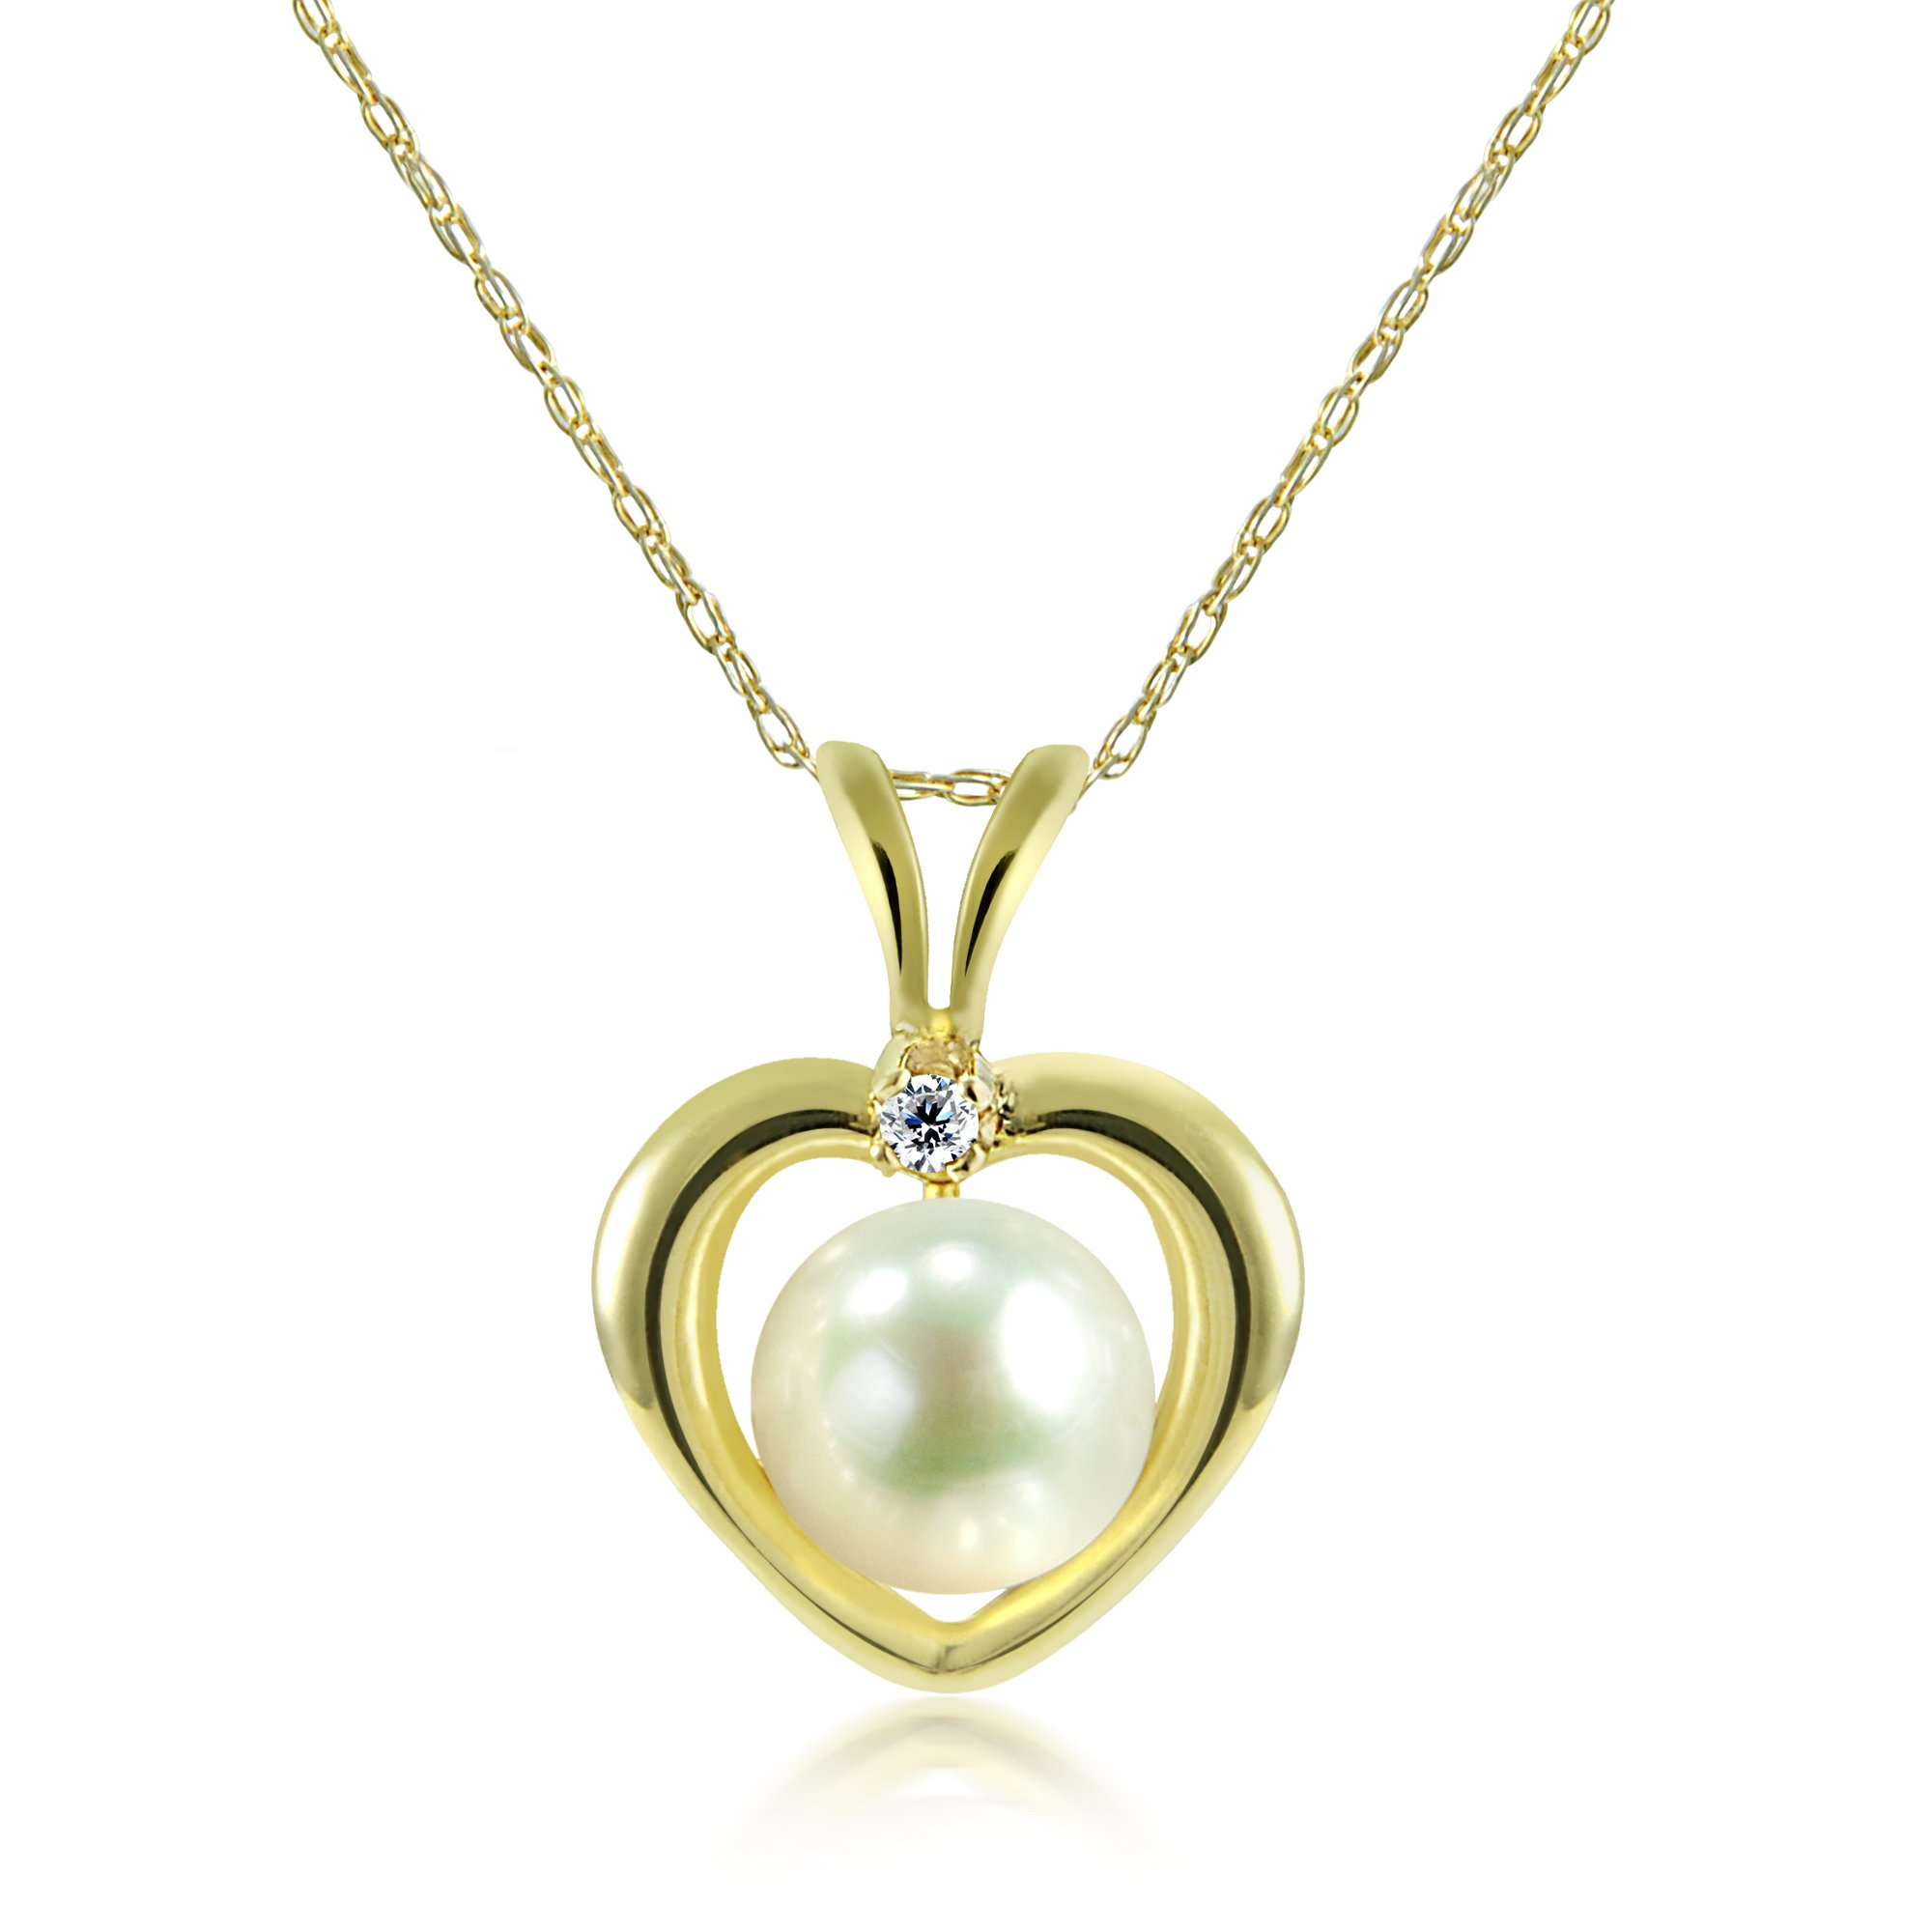 La Regis Jewelry 14k Yellow Gold 5-5.5mm White Freshwater Cultured Pearl and 1/100cttw Diamond Pendant Necklace, 13'' by La Regis Jewelry